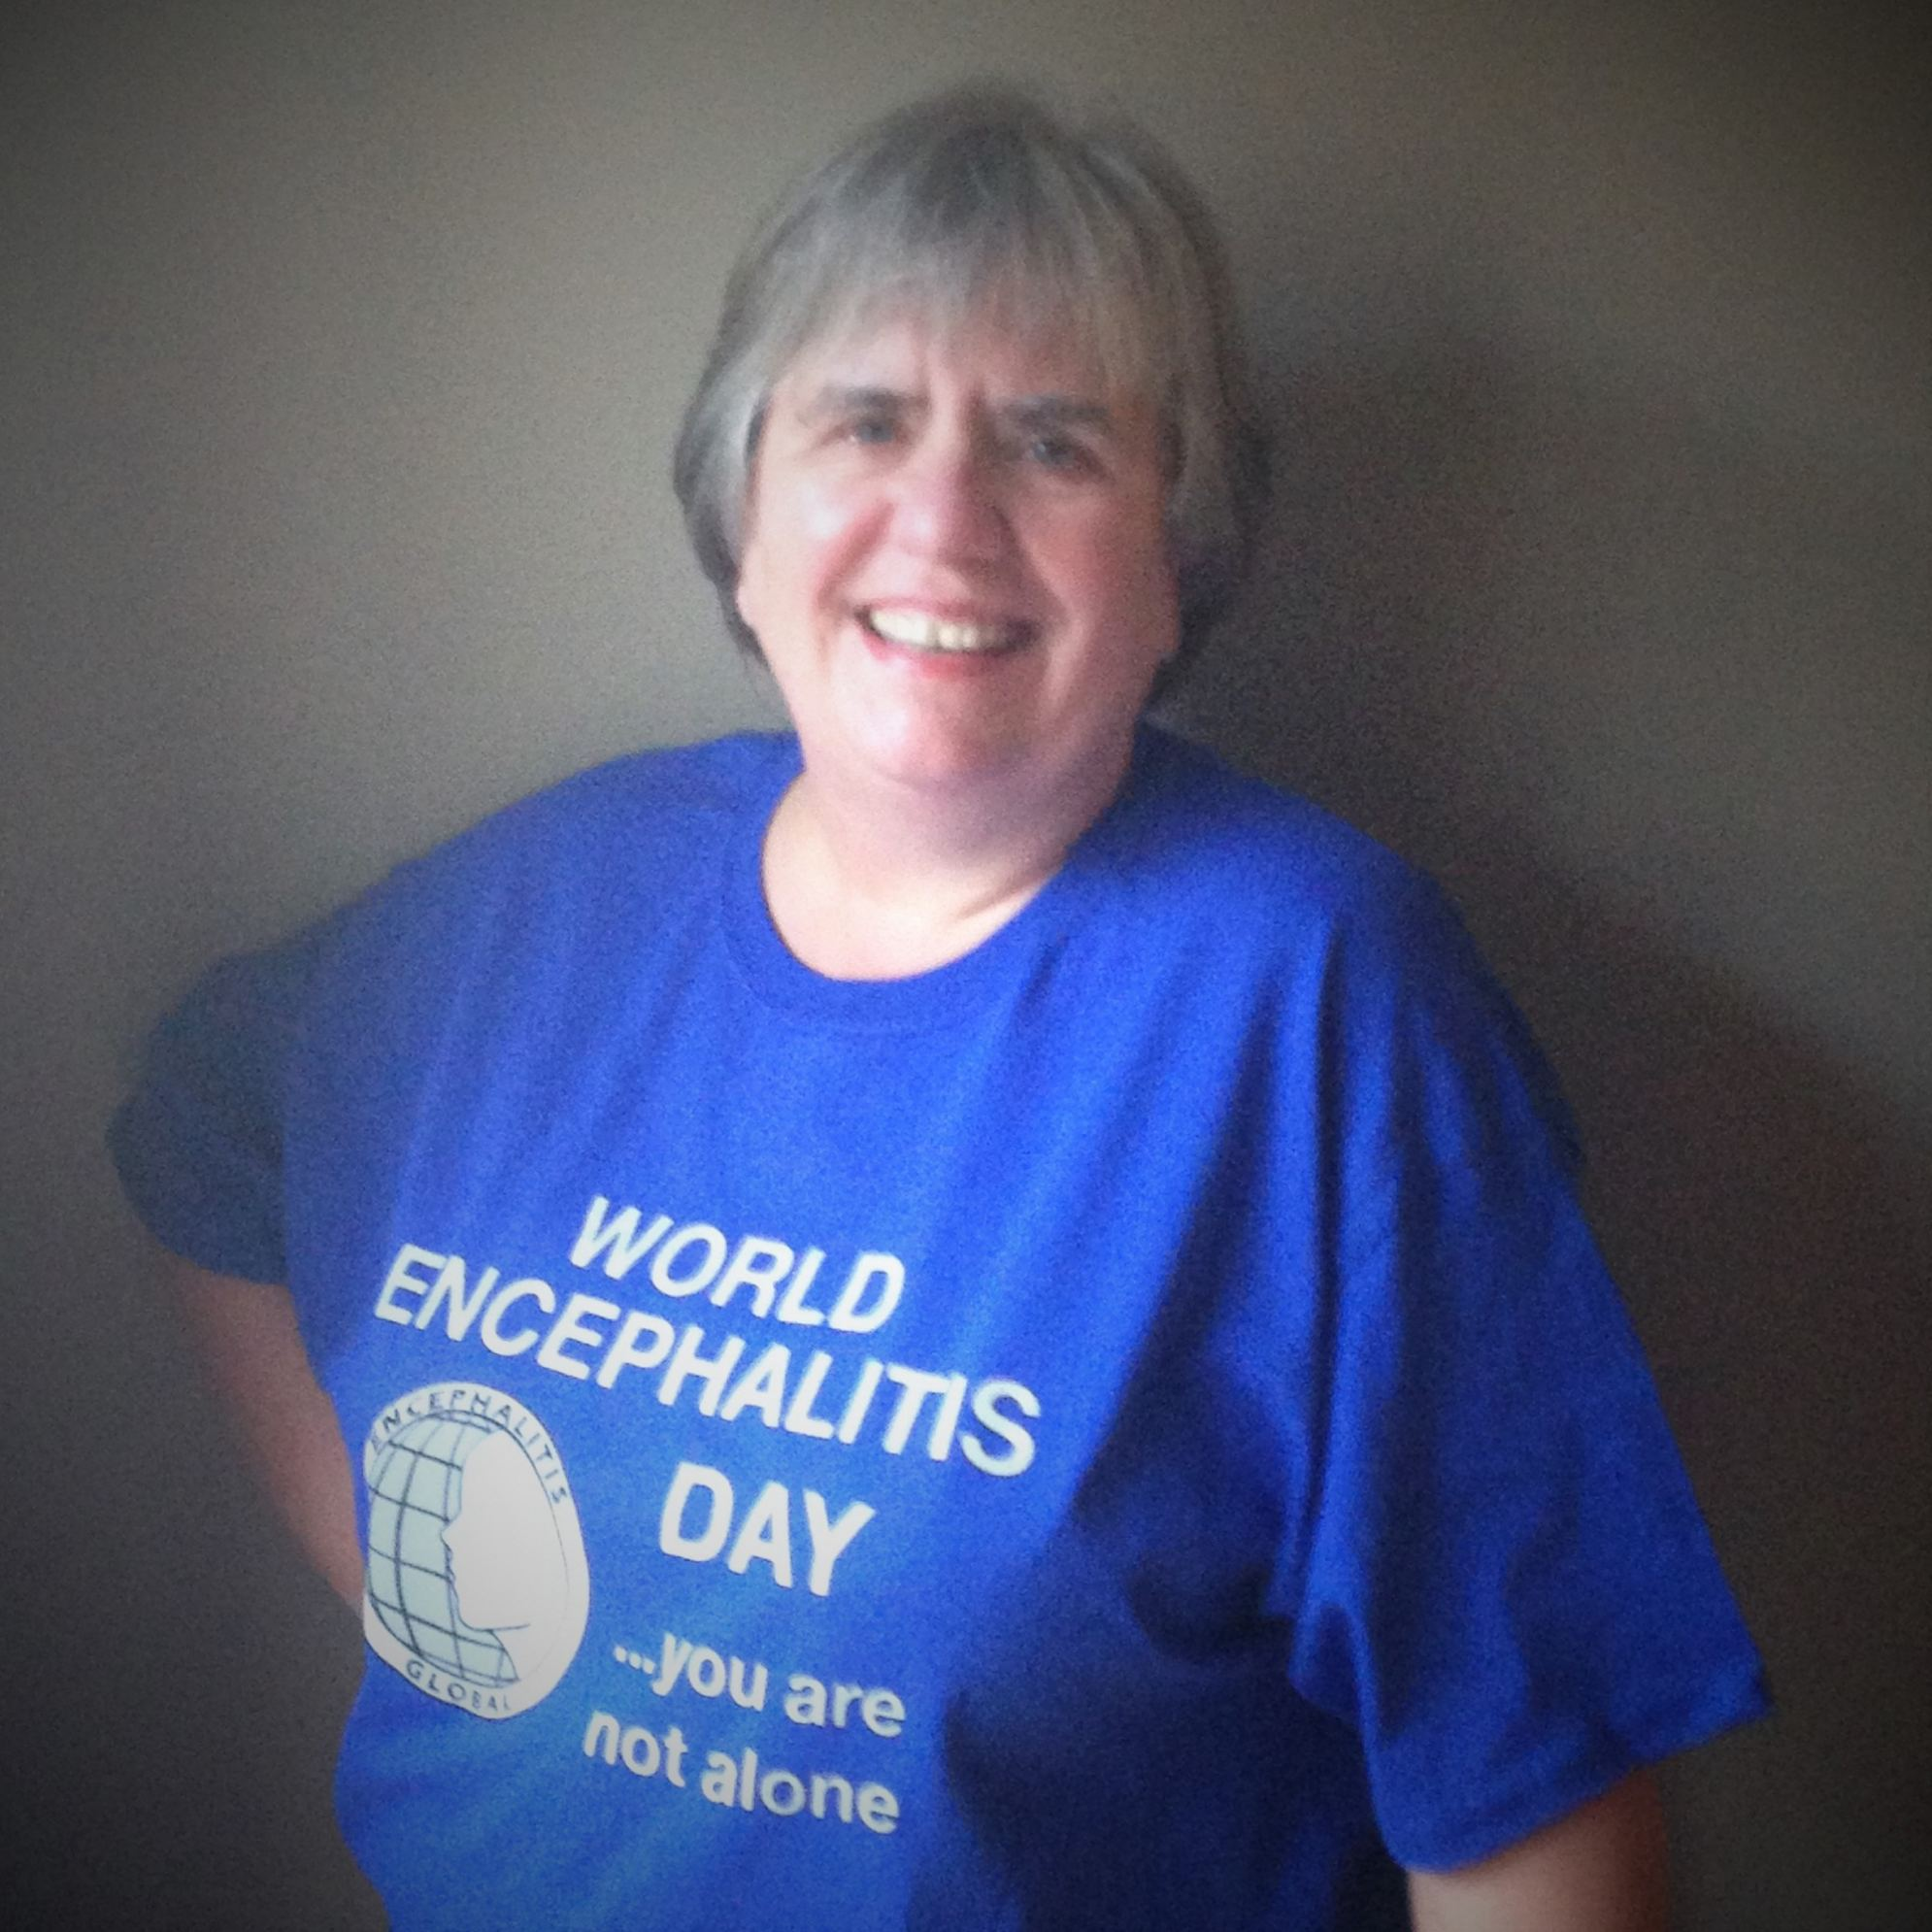 Wendy Station - World Encephalitis Day